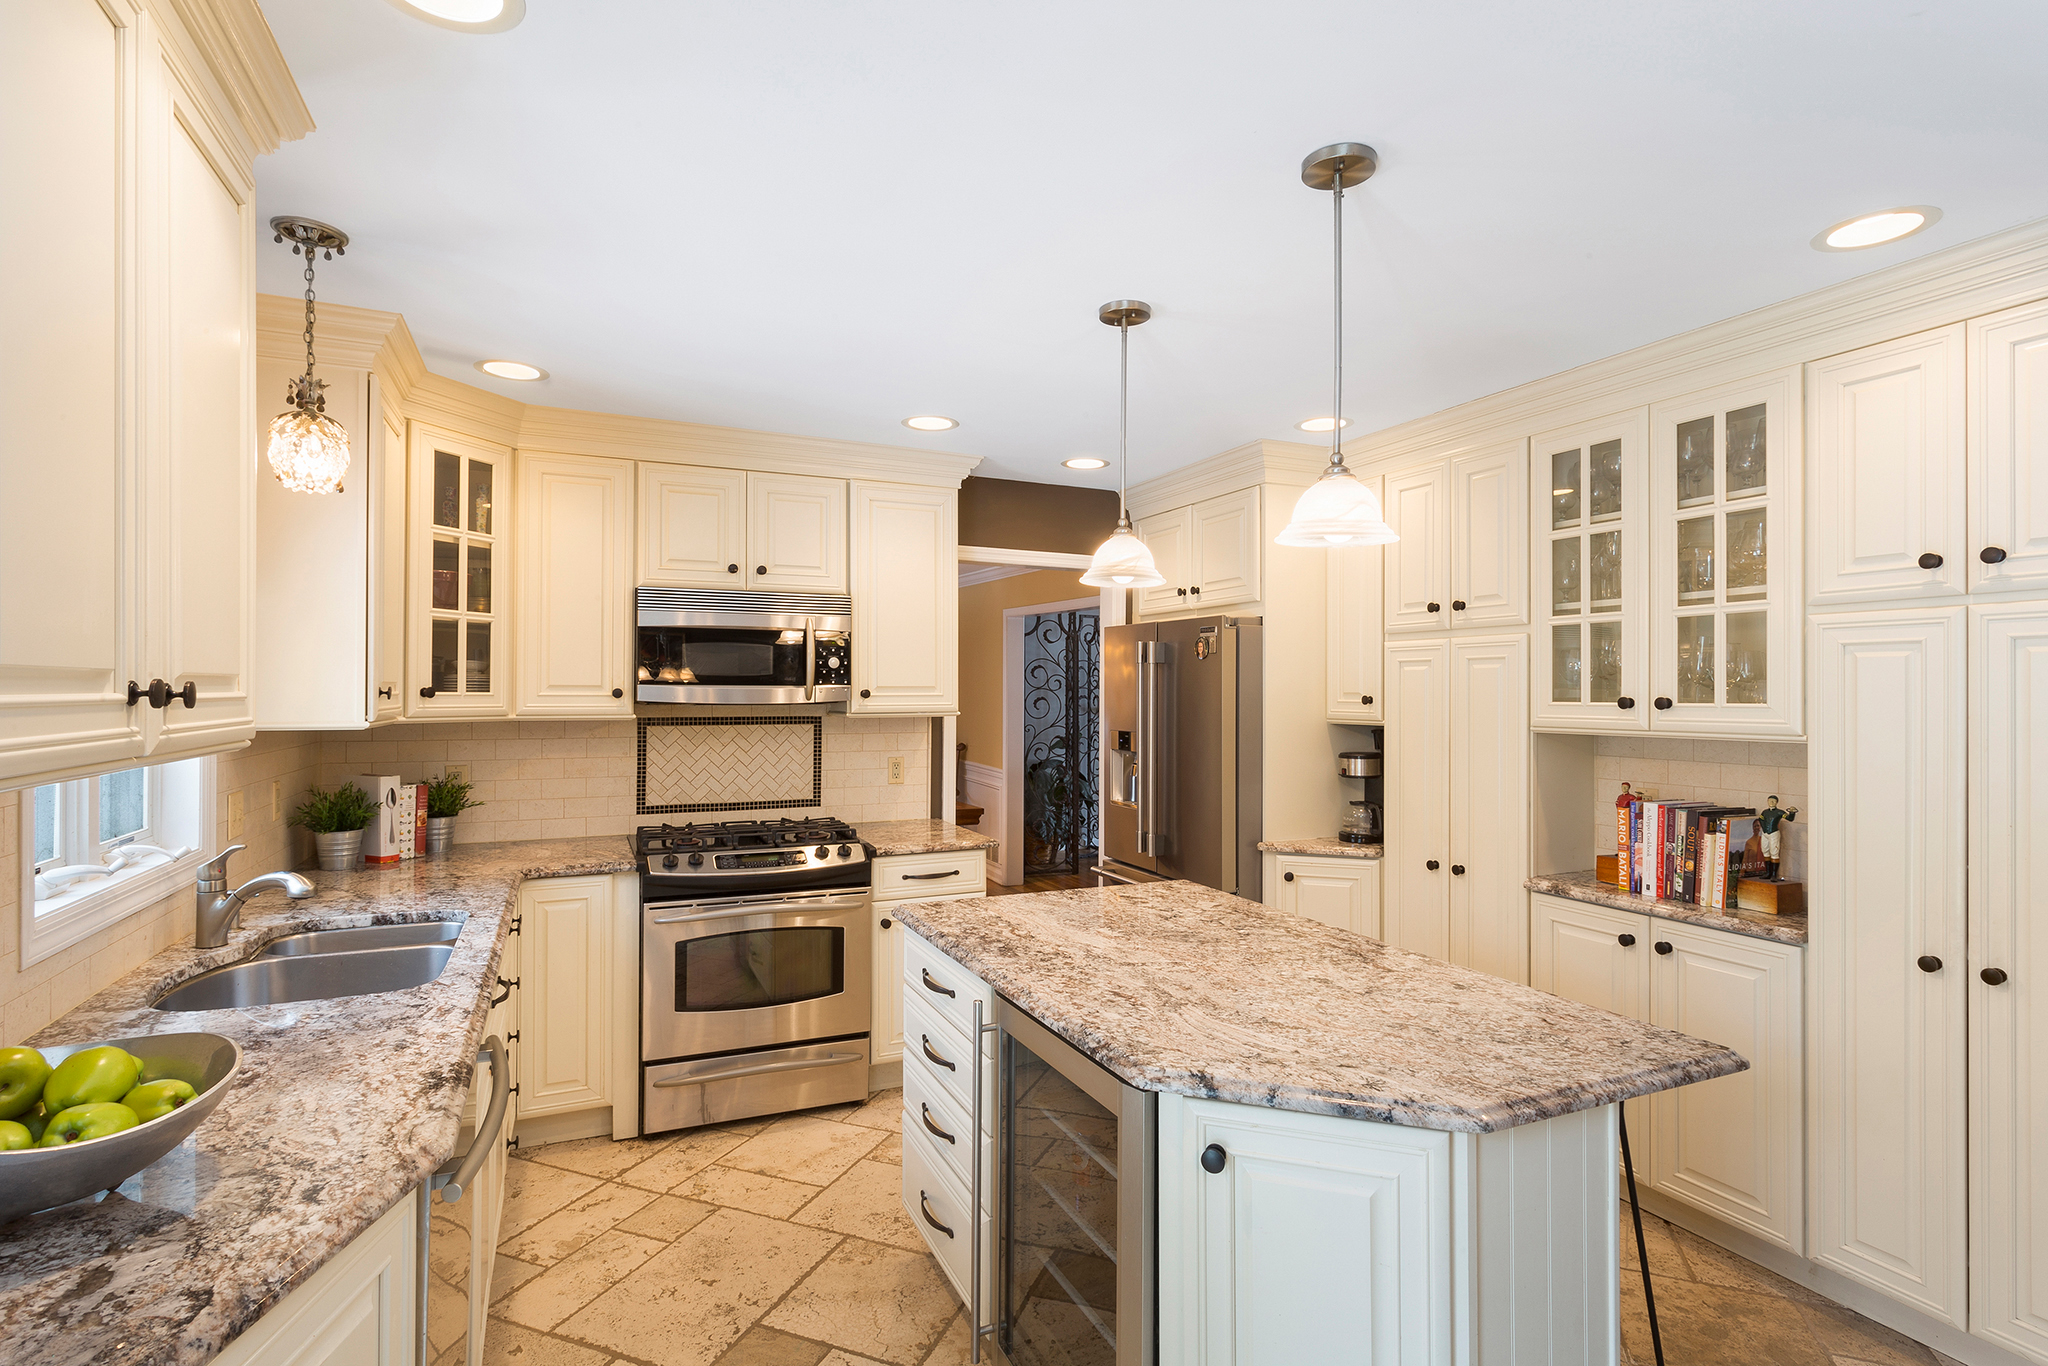 06 14 Keats Road Tewksbury Township — Kitchen 1